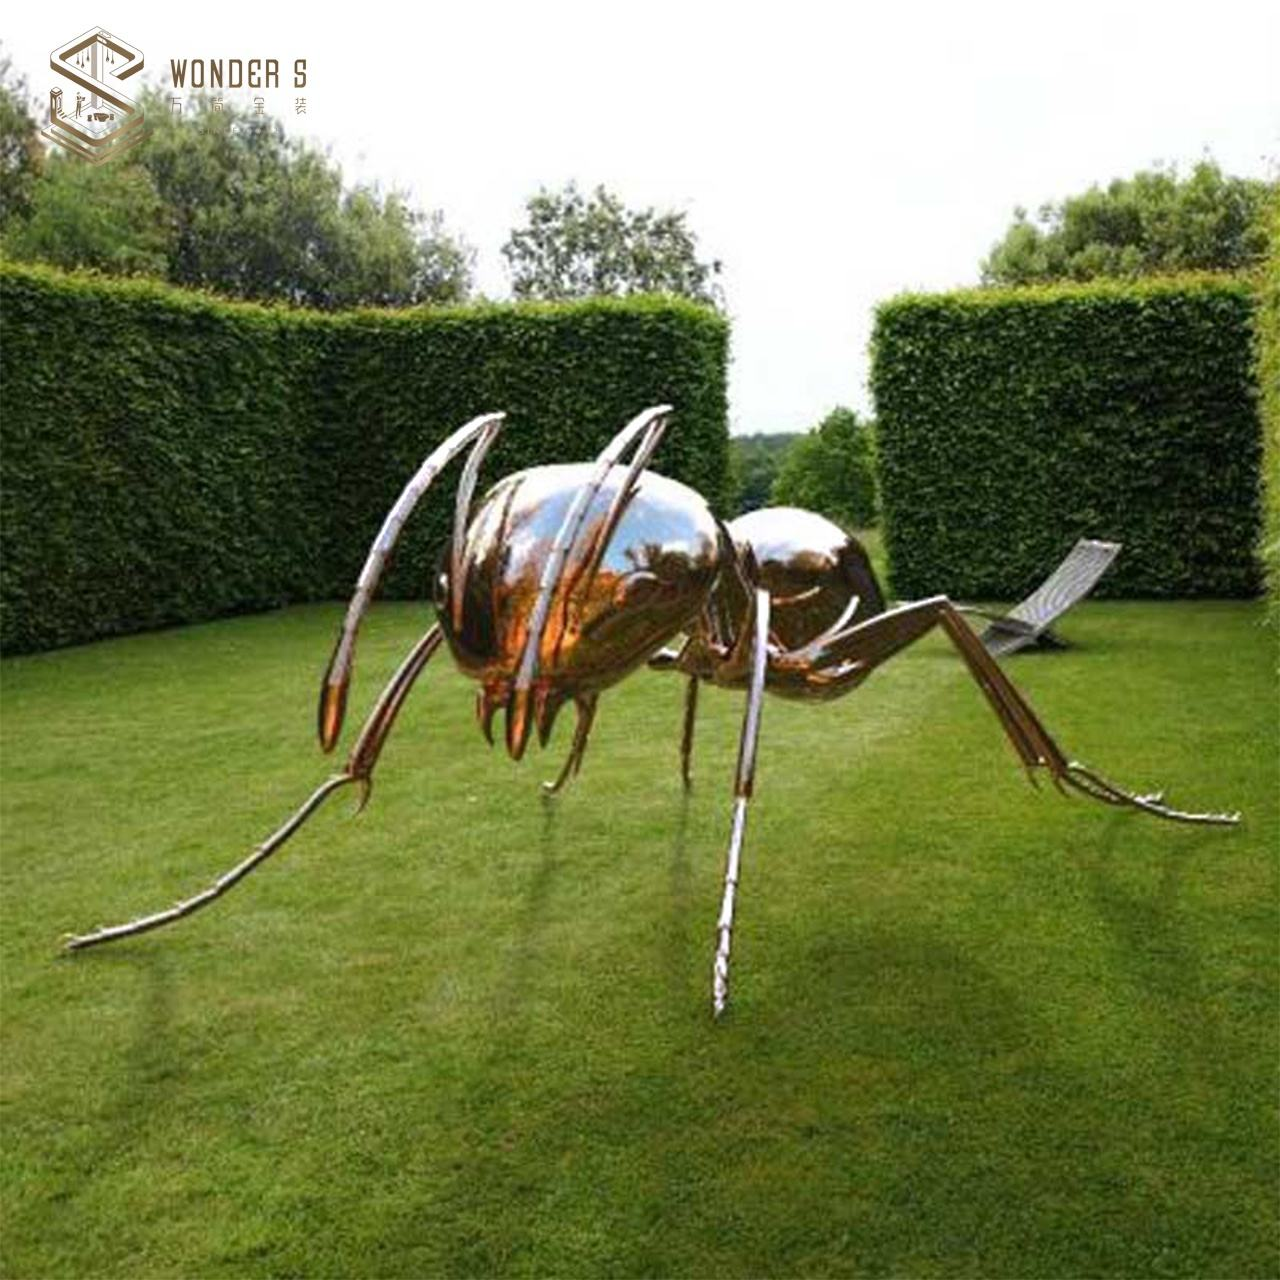 Metal art Giant Ant Sculpture for outside stainless steel Park decoration